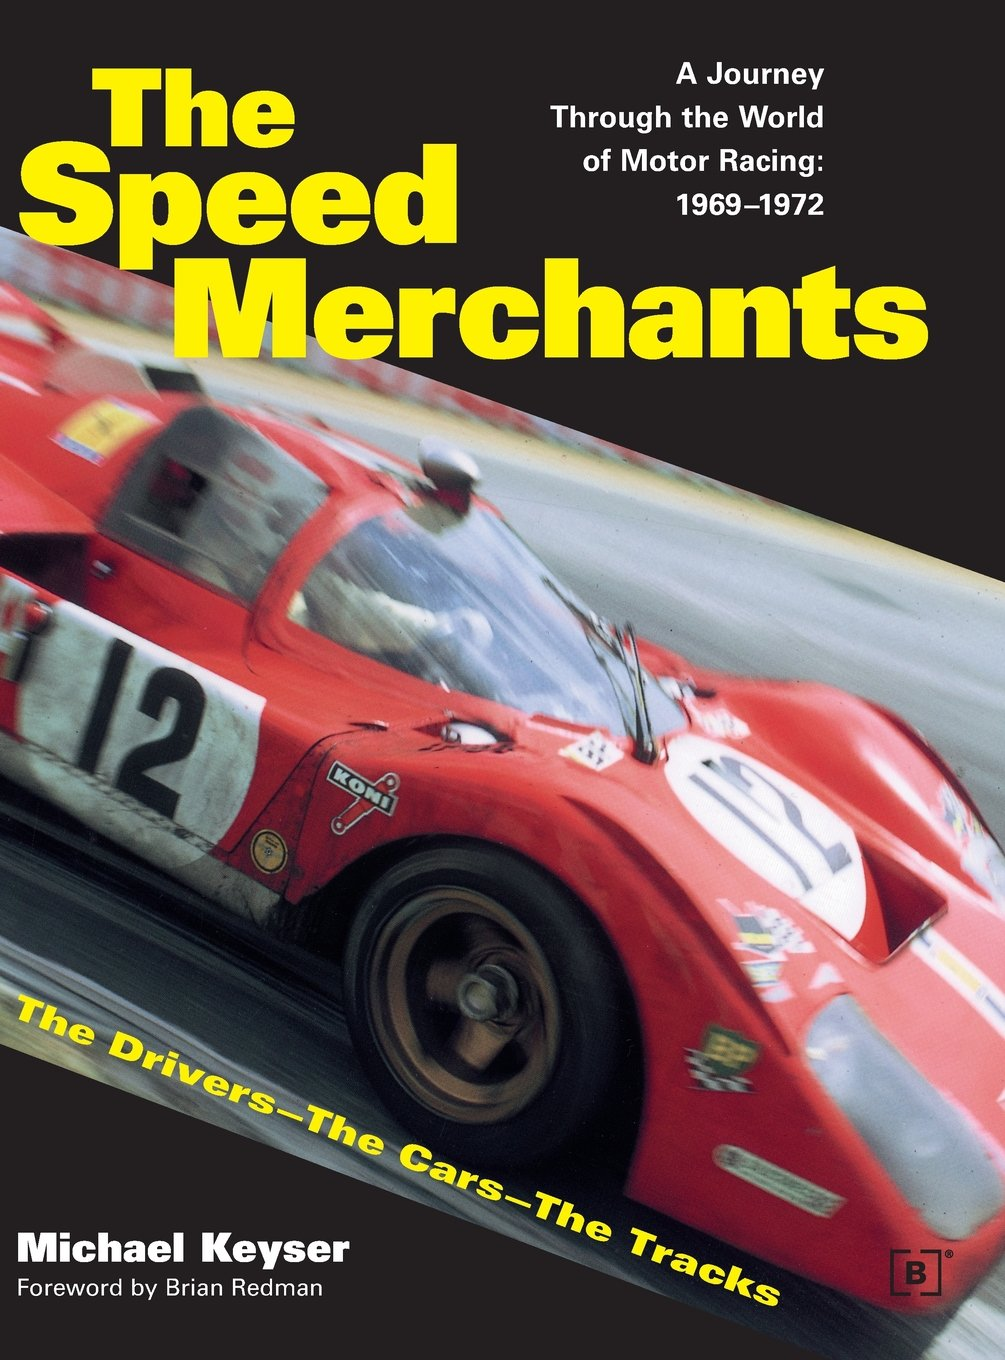 The Speed Merchants: A Journey Through the World of Motor Racing, 1969-1972 (Driving)